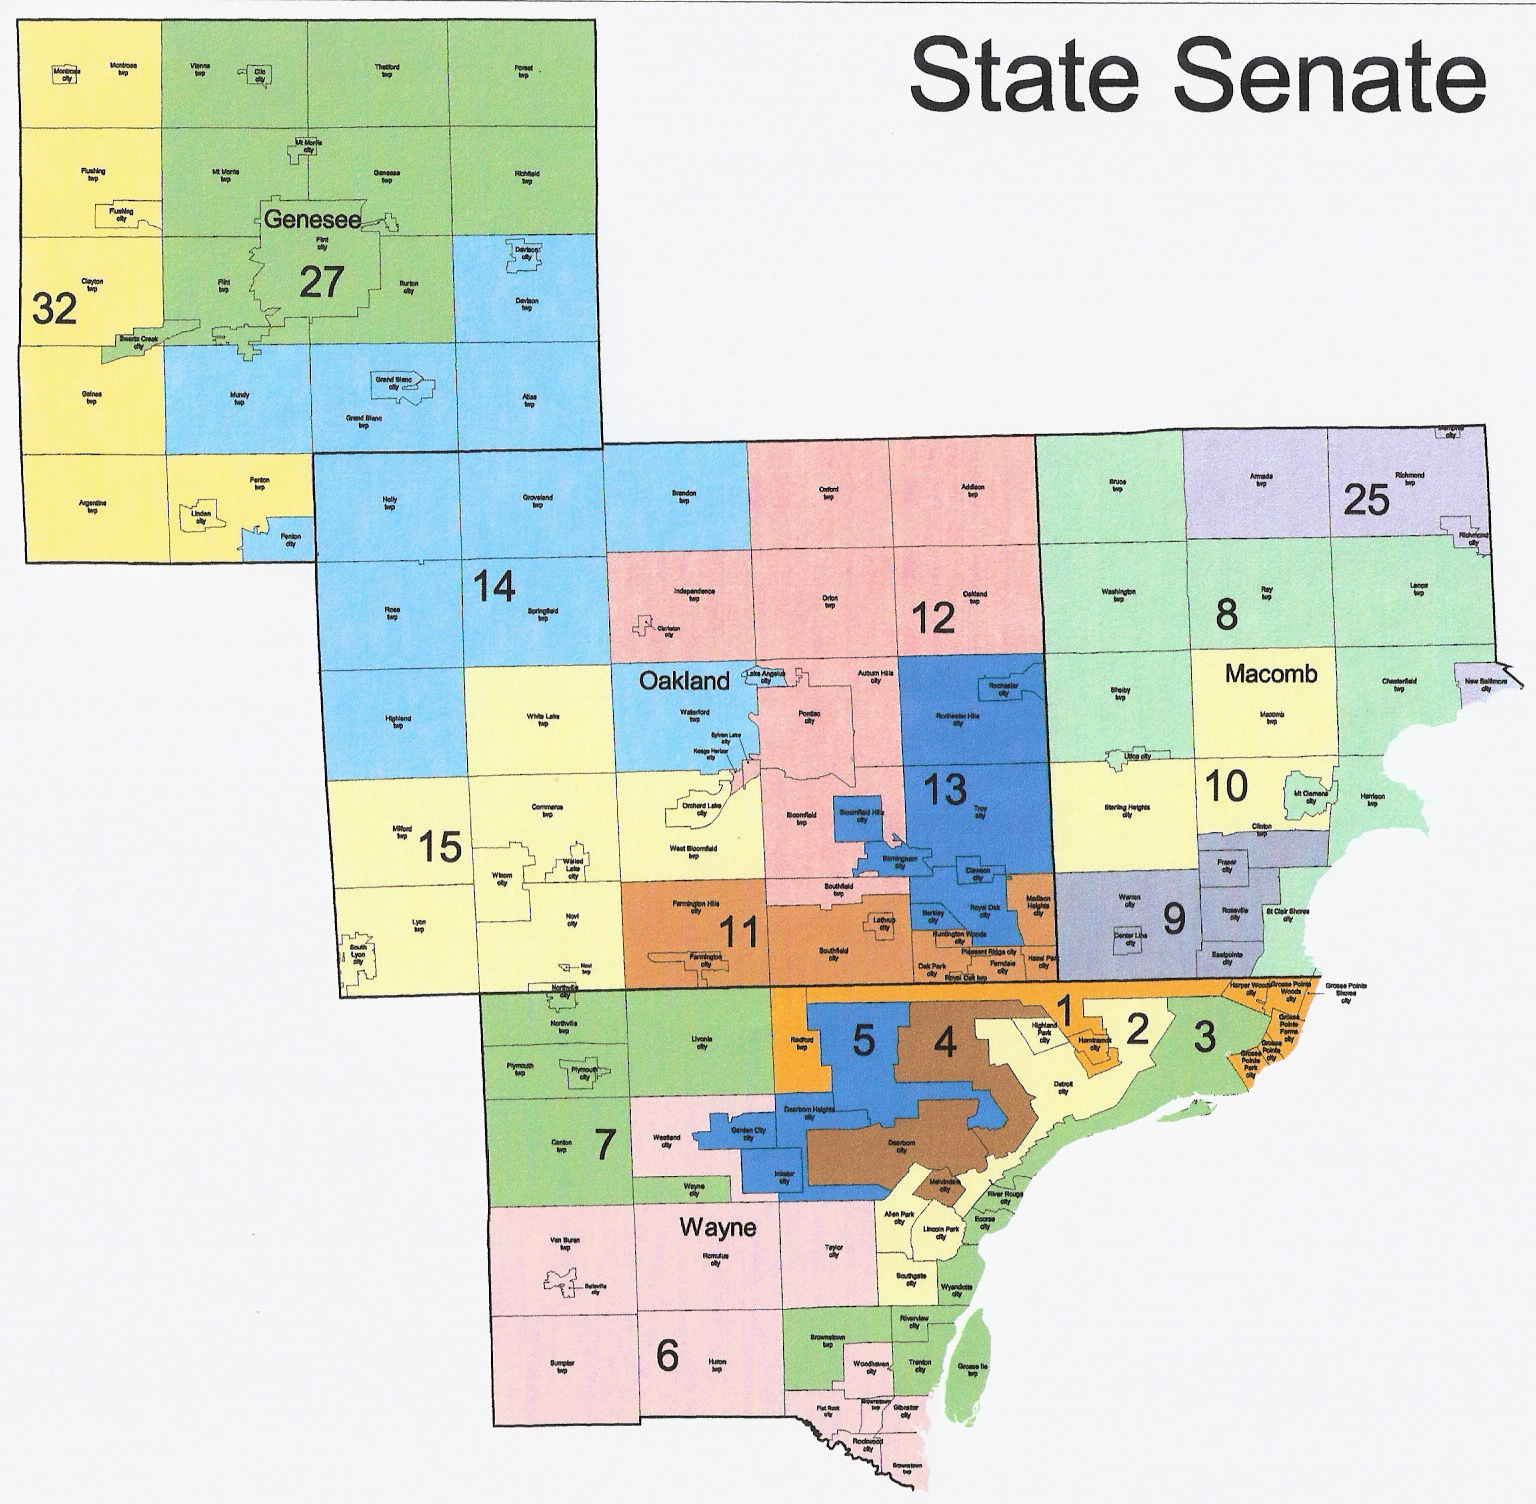 Michigan Redistricting: Official